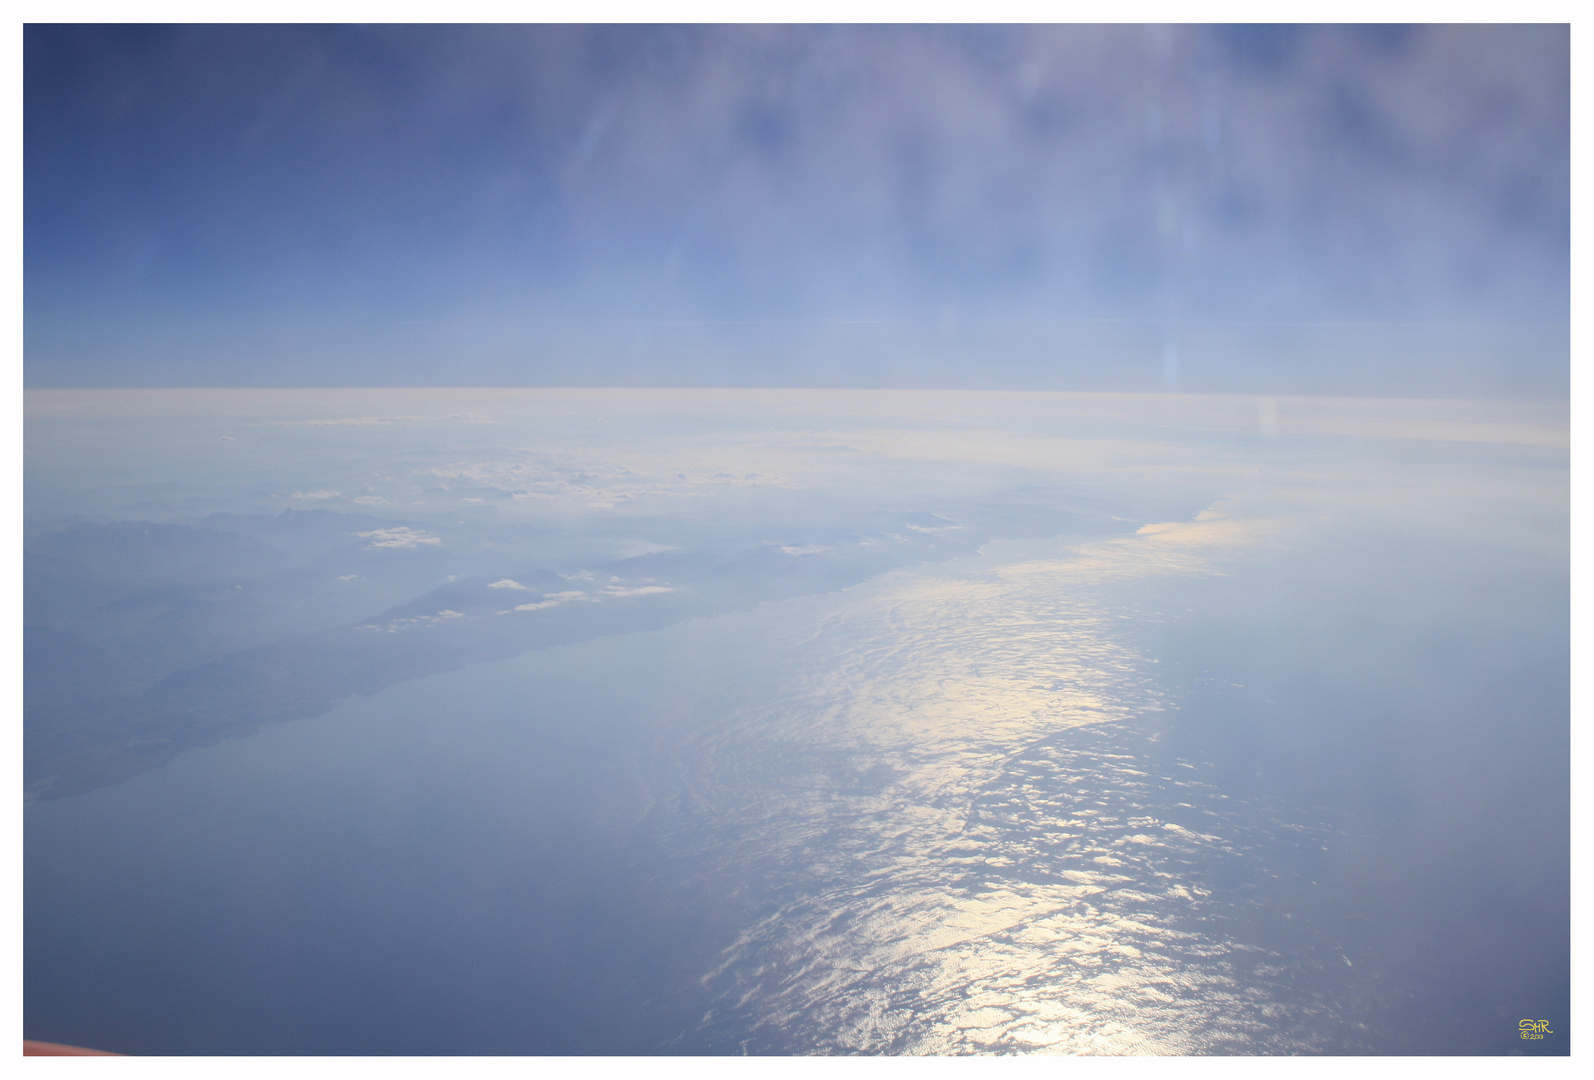 The curvature of the Earth...